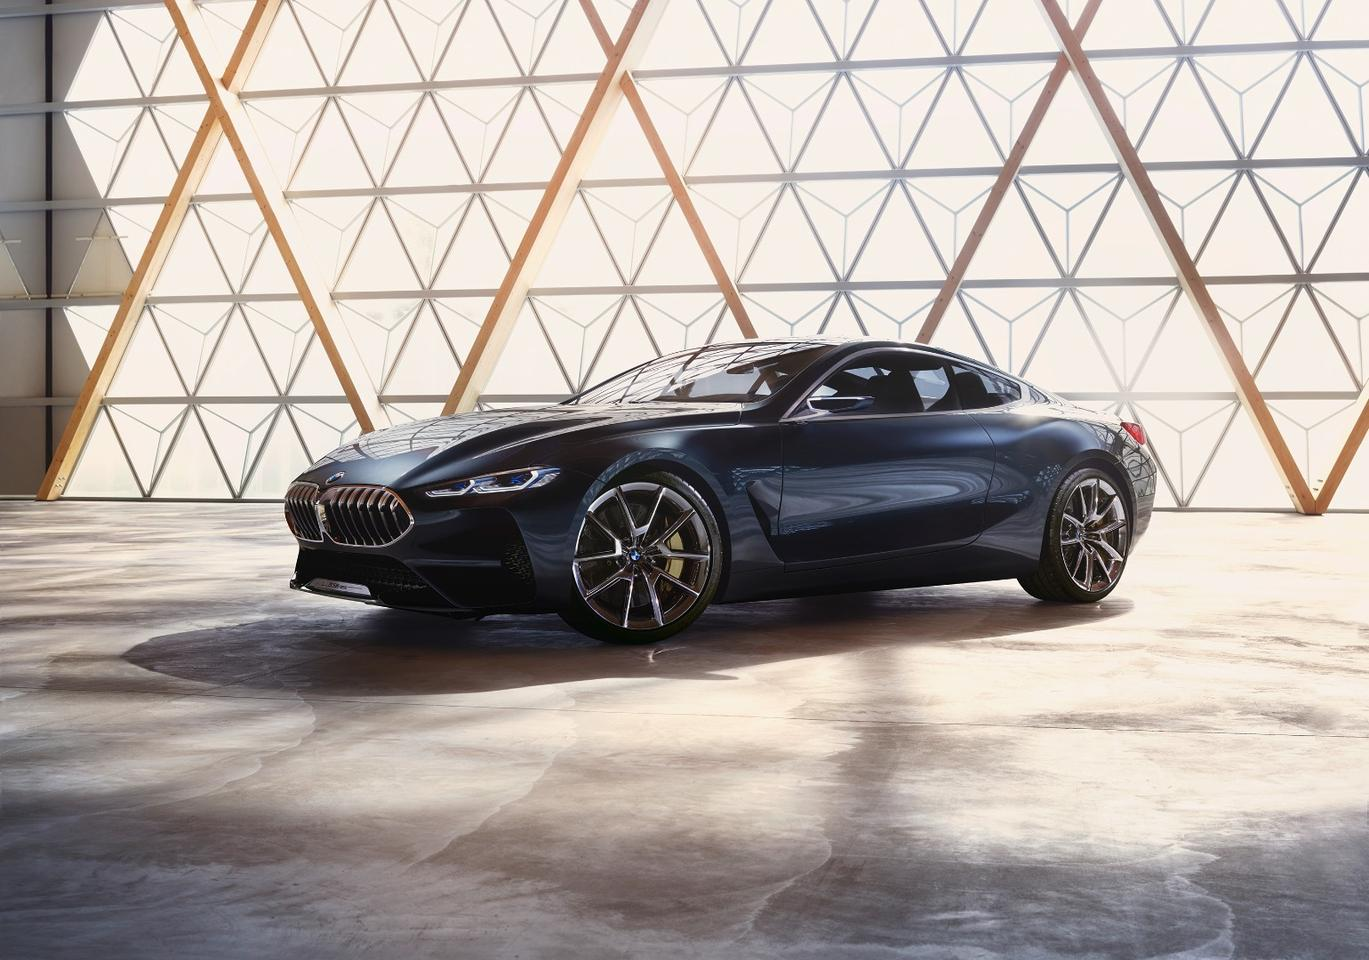 BMW's Concept 8 Series is sharp, curvy and aggressive